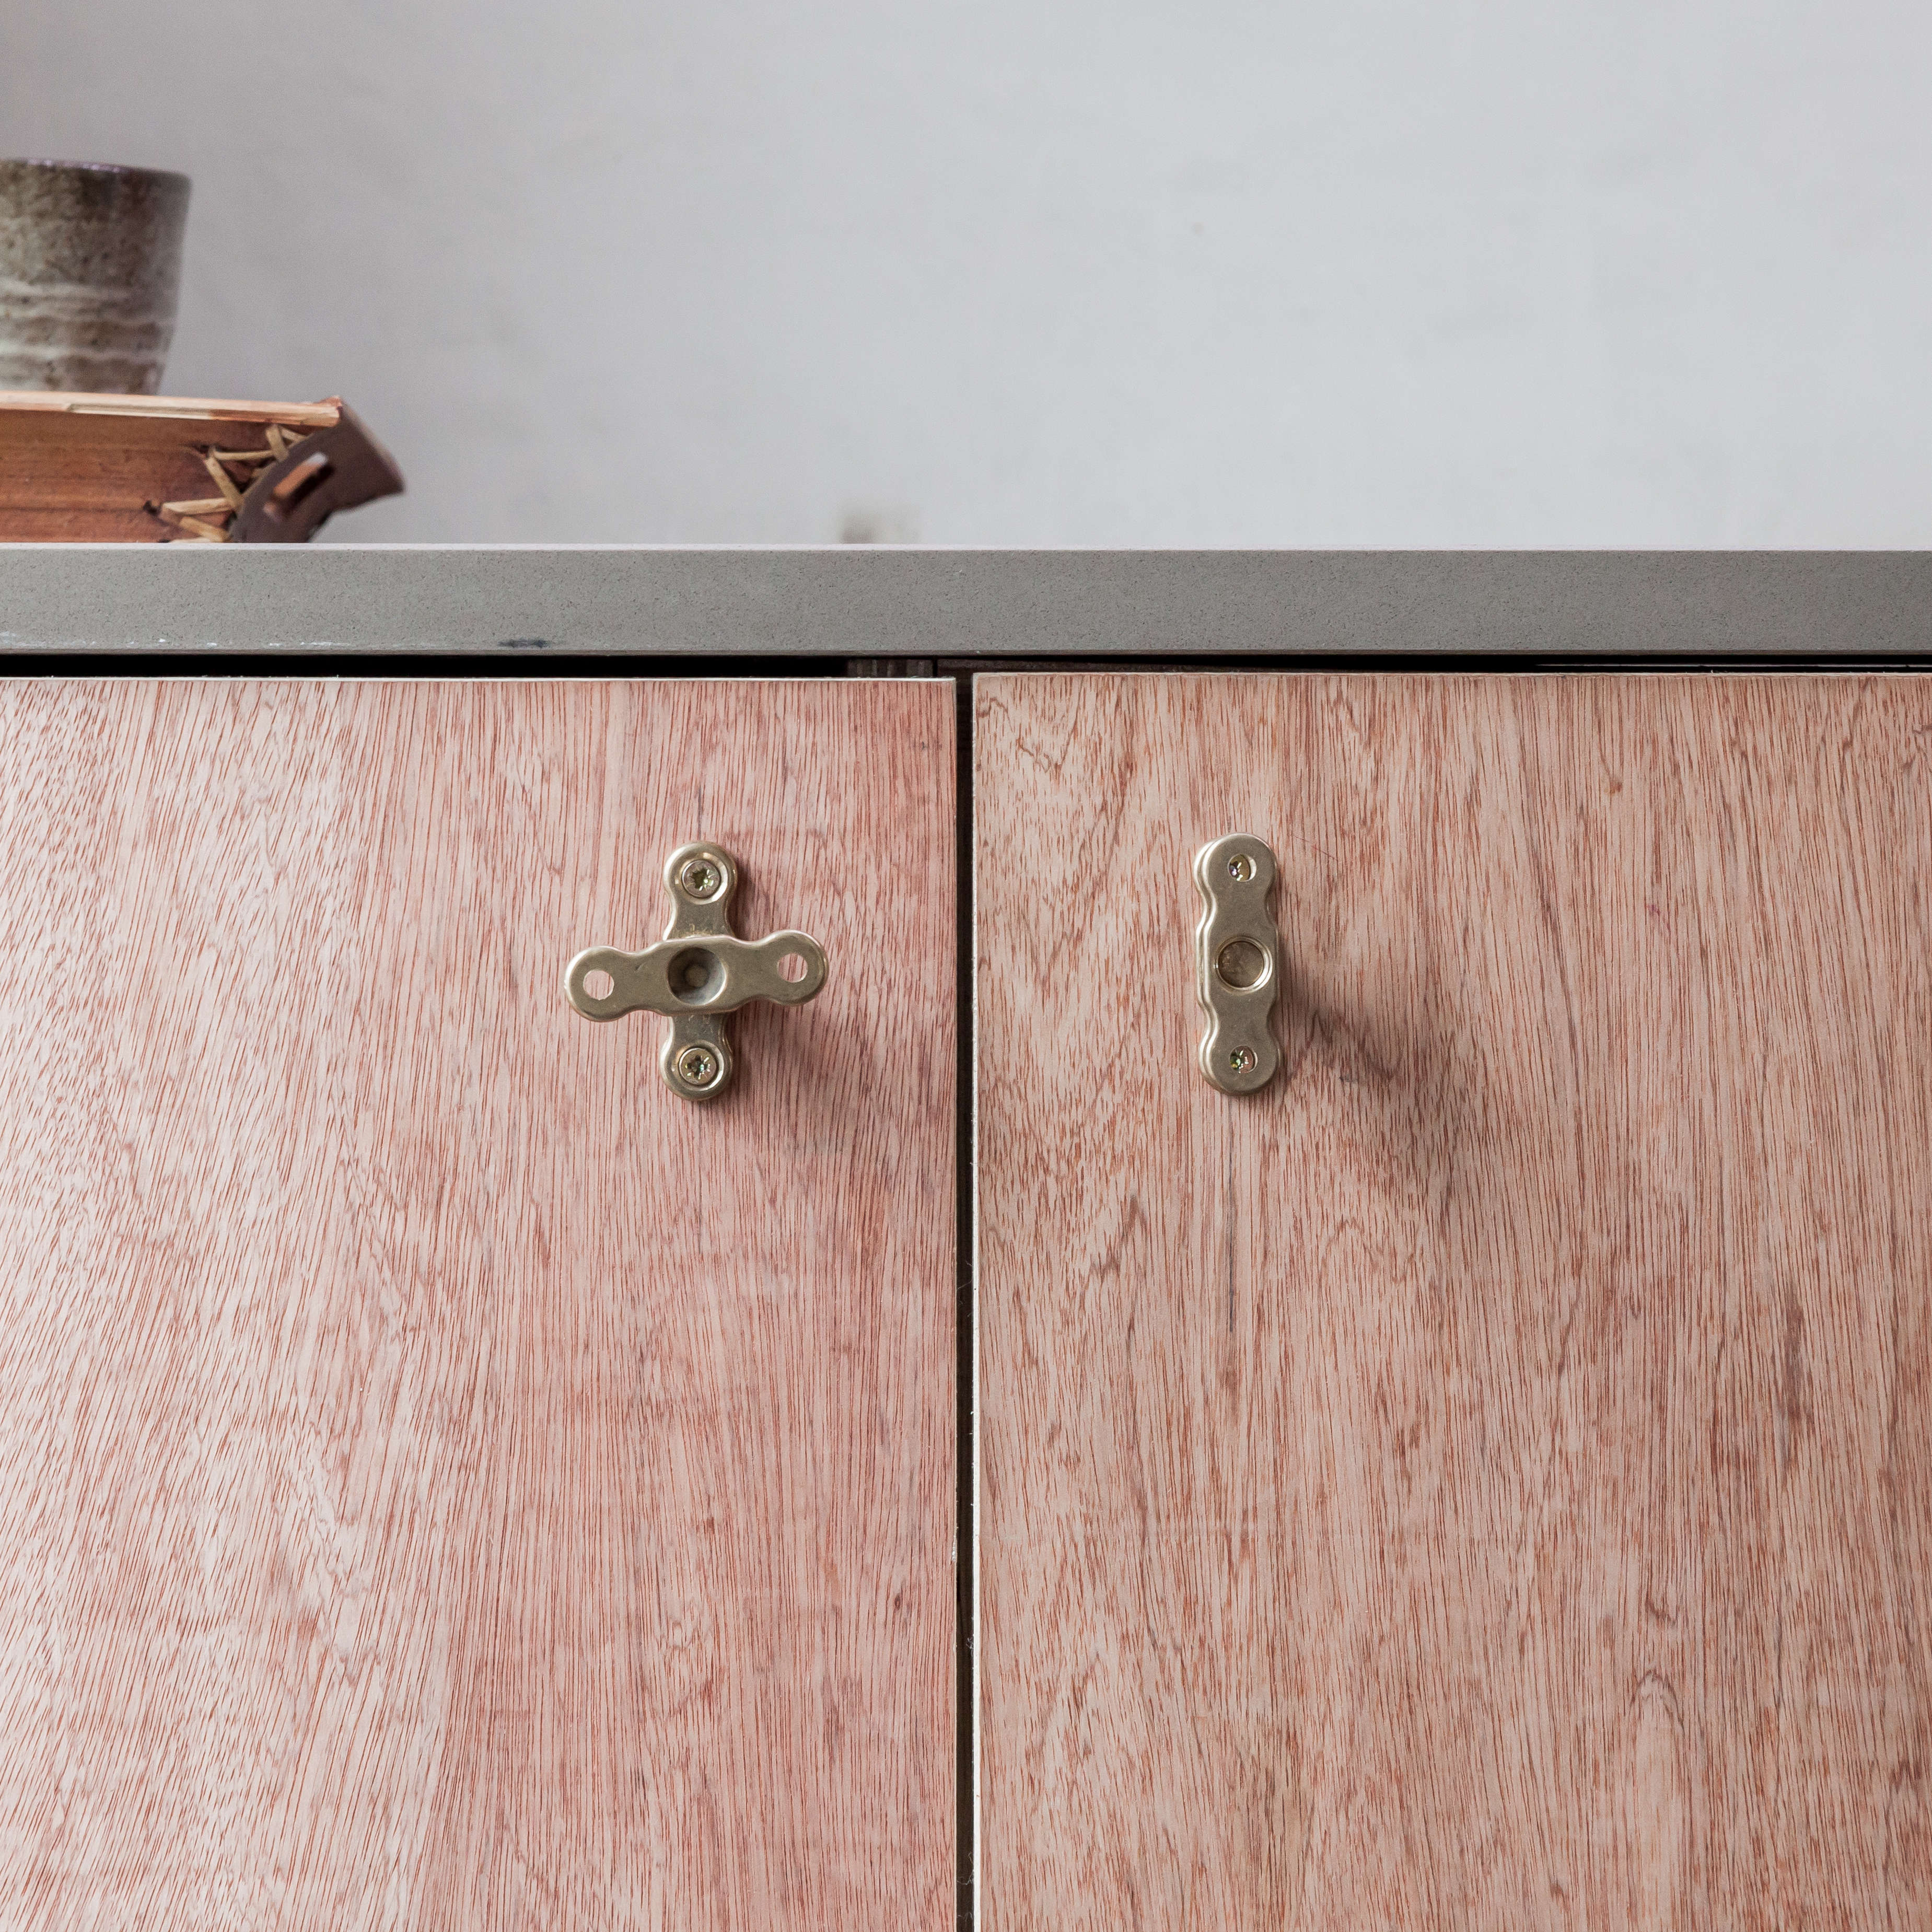 plywood cabinets with cabinet knobs made from brass plumbing parts, designed by 15